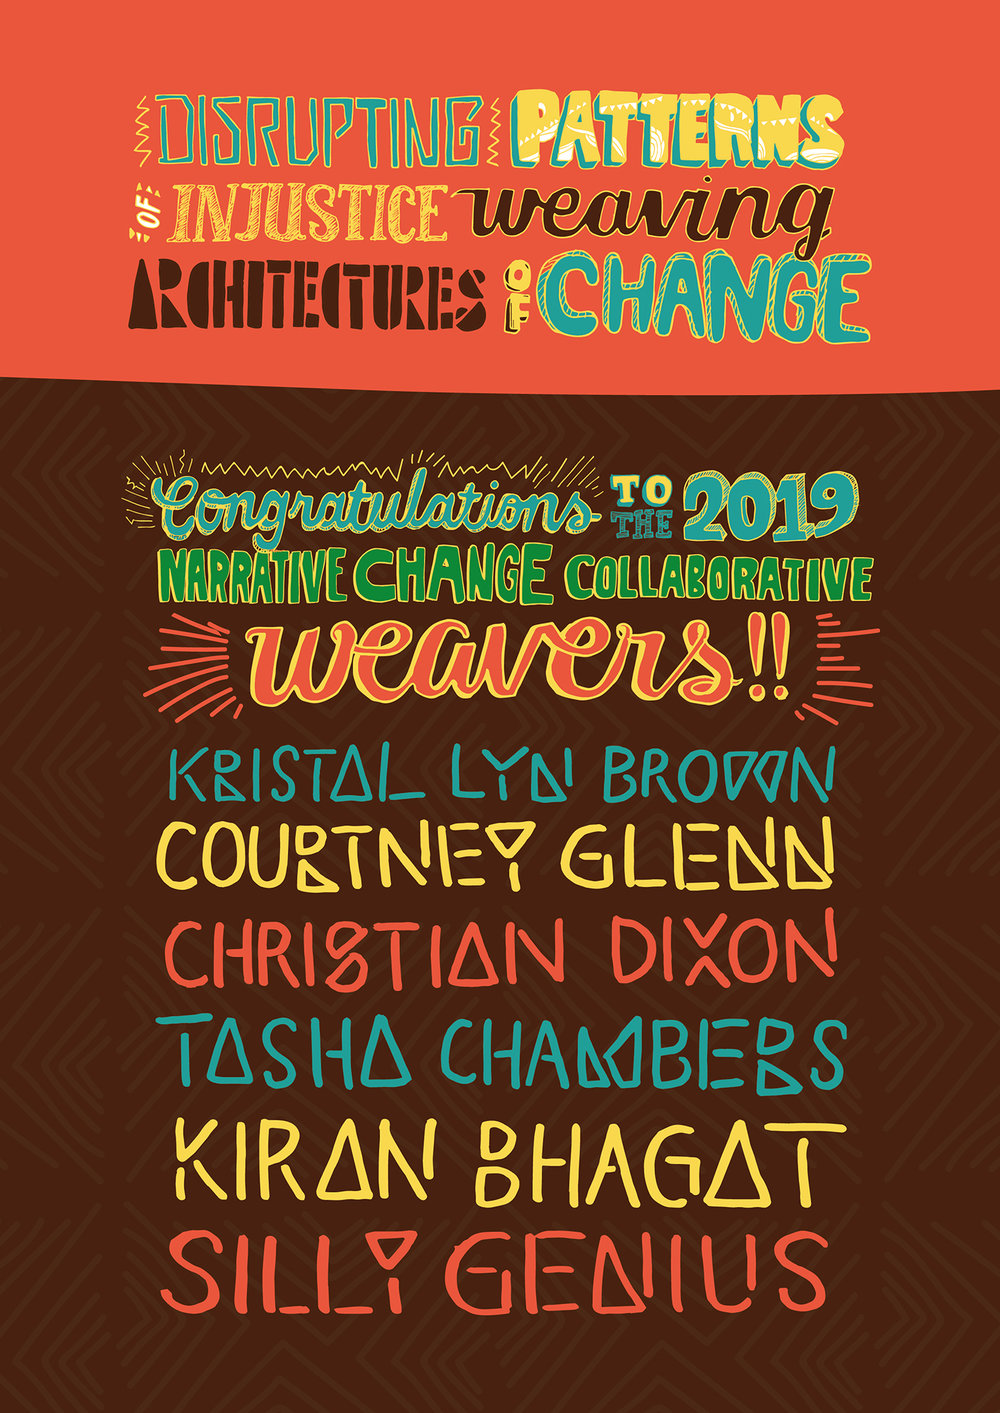 We are honored to have The Weavers form the first cohort of the Narrative Change Collaborative (NCC).